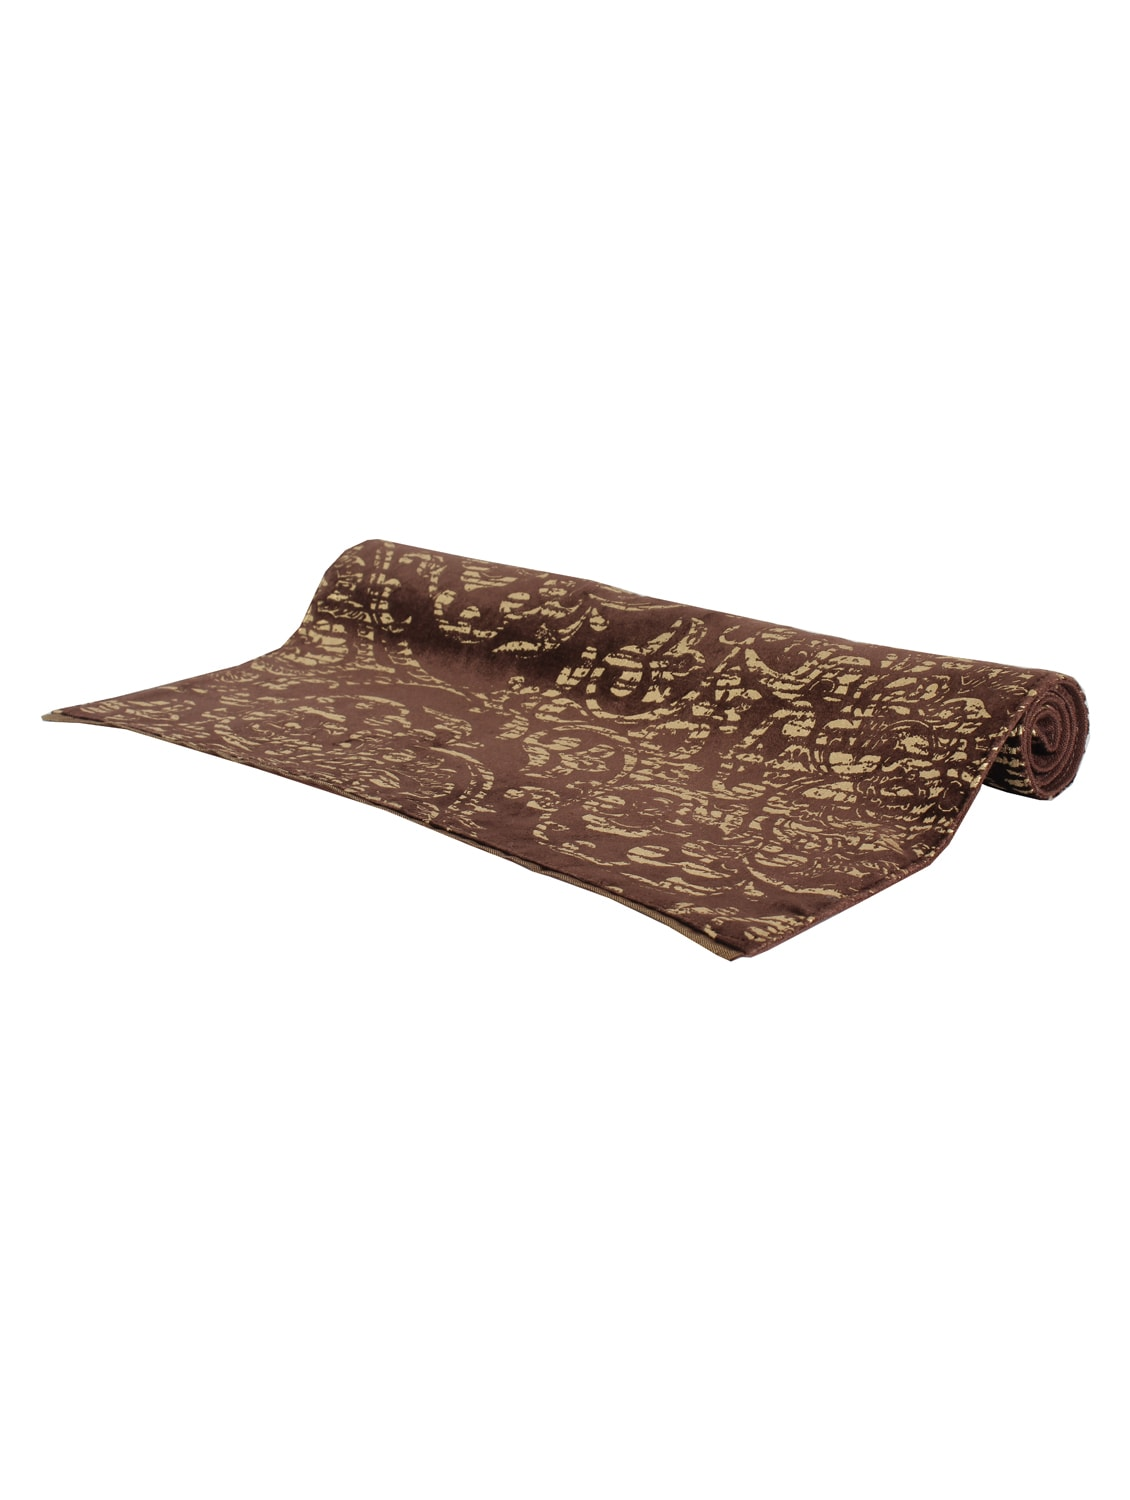 Sanaa Gold Foil Printed Velvet Table Mat Set Of 2Pcs Brown/gold 33x48 Cms - By